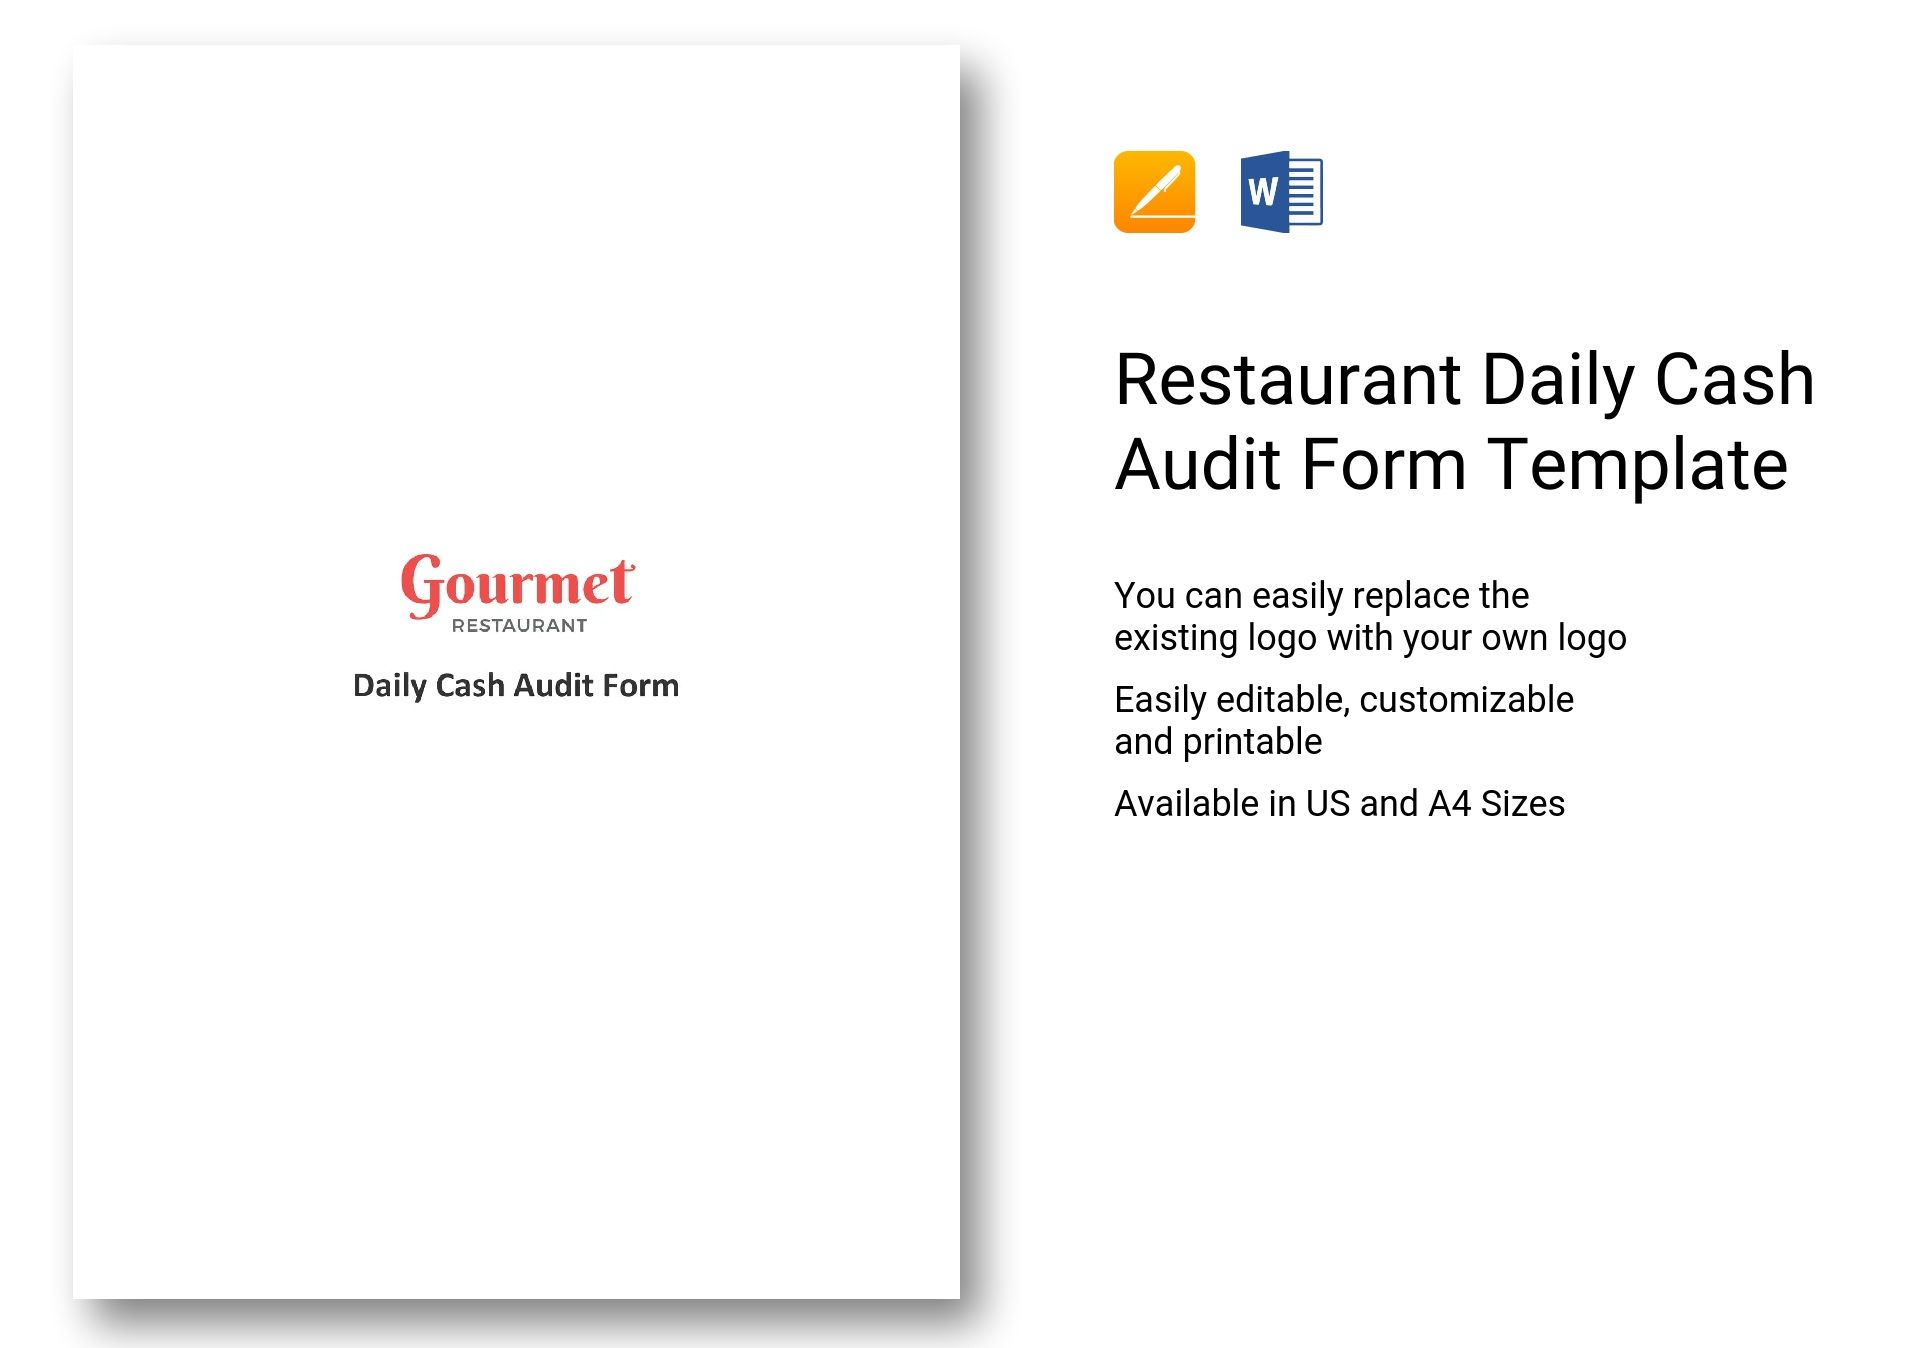 Restaurant Daily Cash Audit Form Template In Word Apple Pages